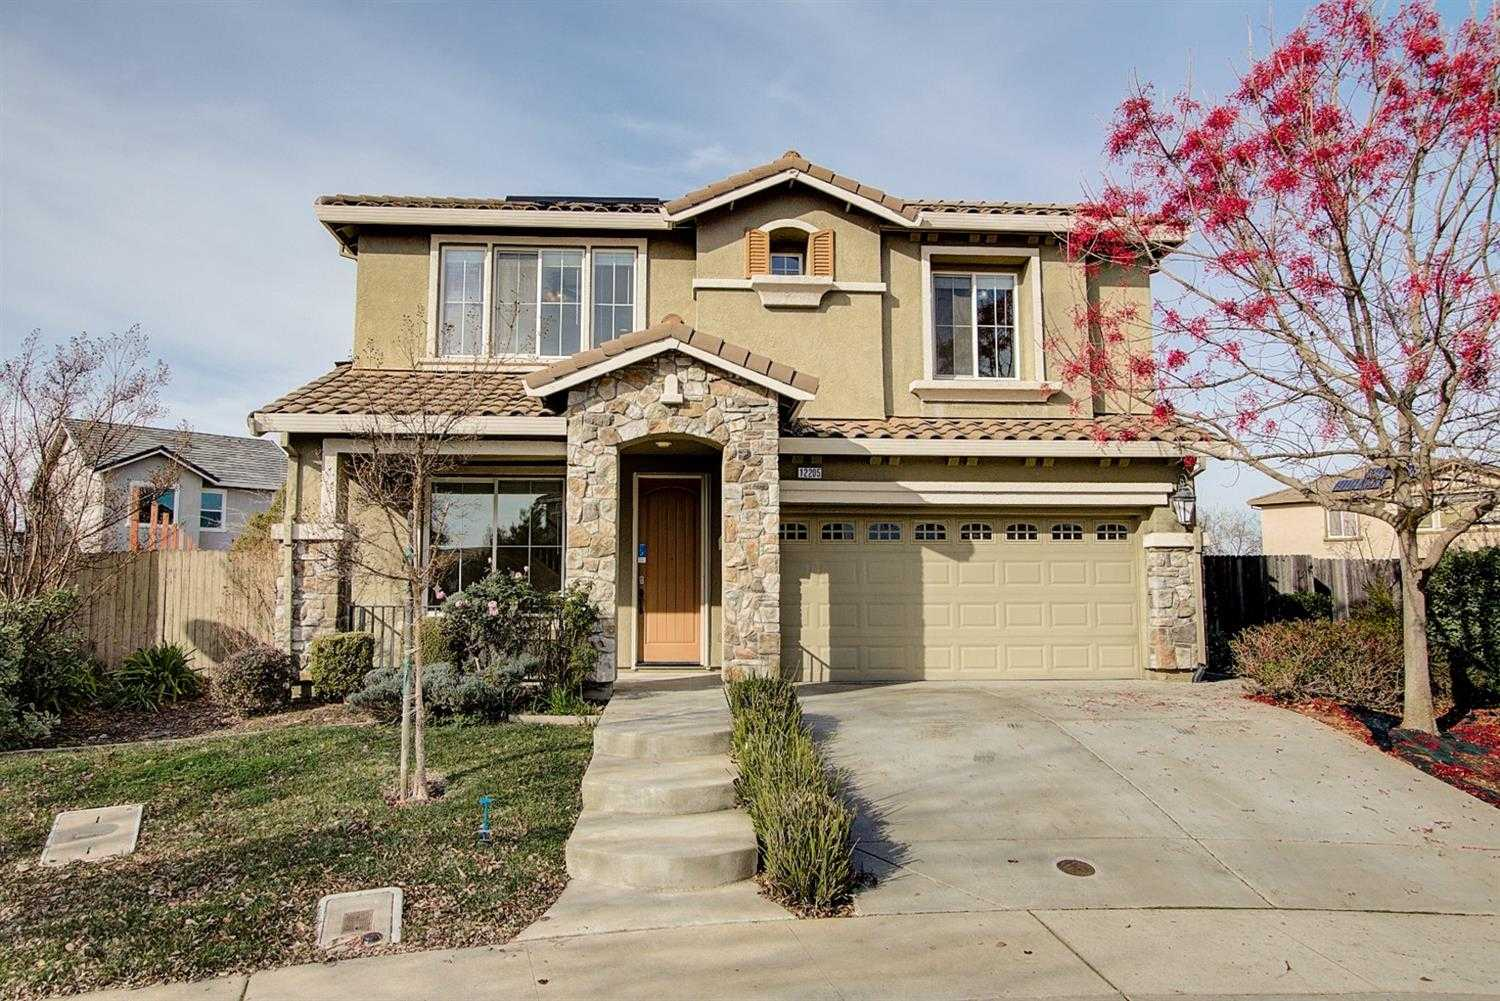 12205 Conservancy Way Rancho Cordova, CA 95742